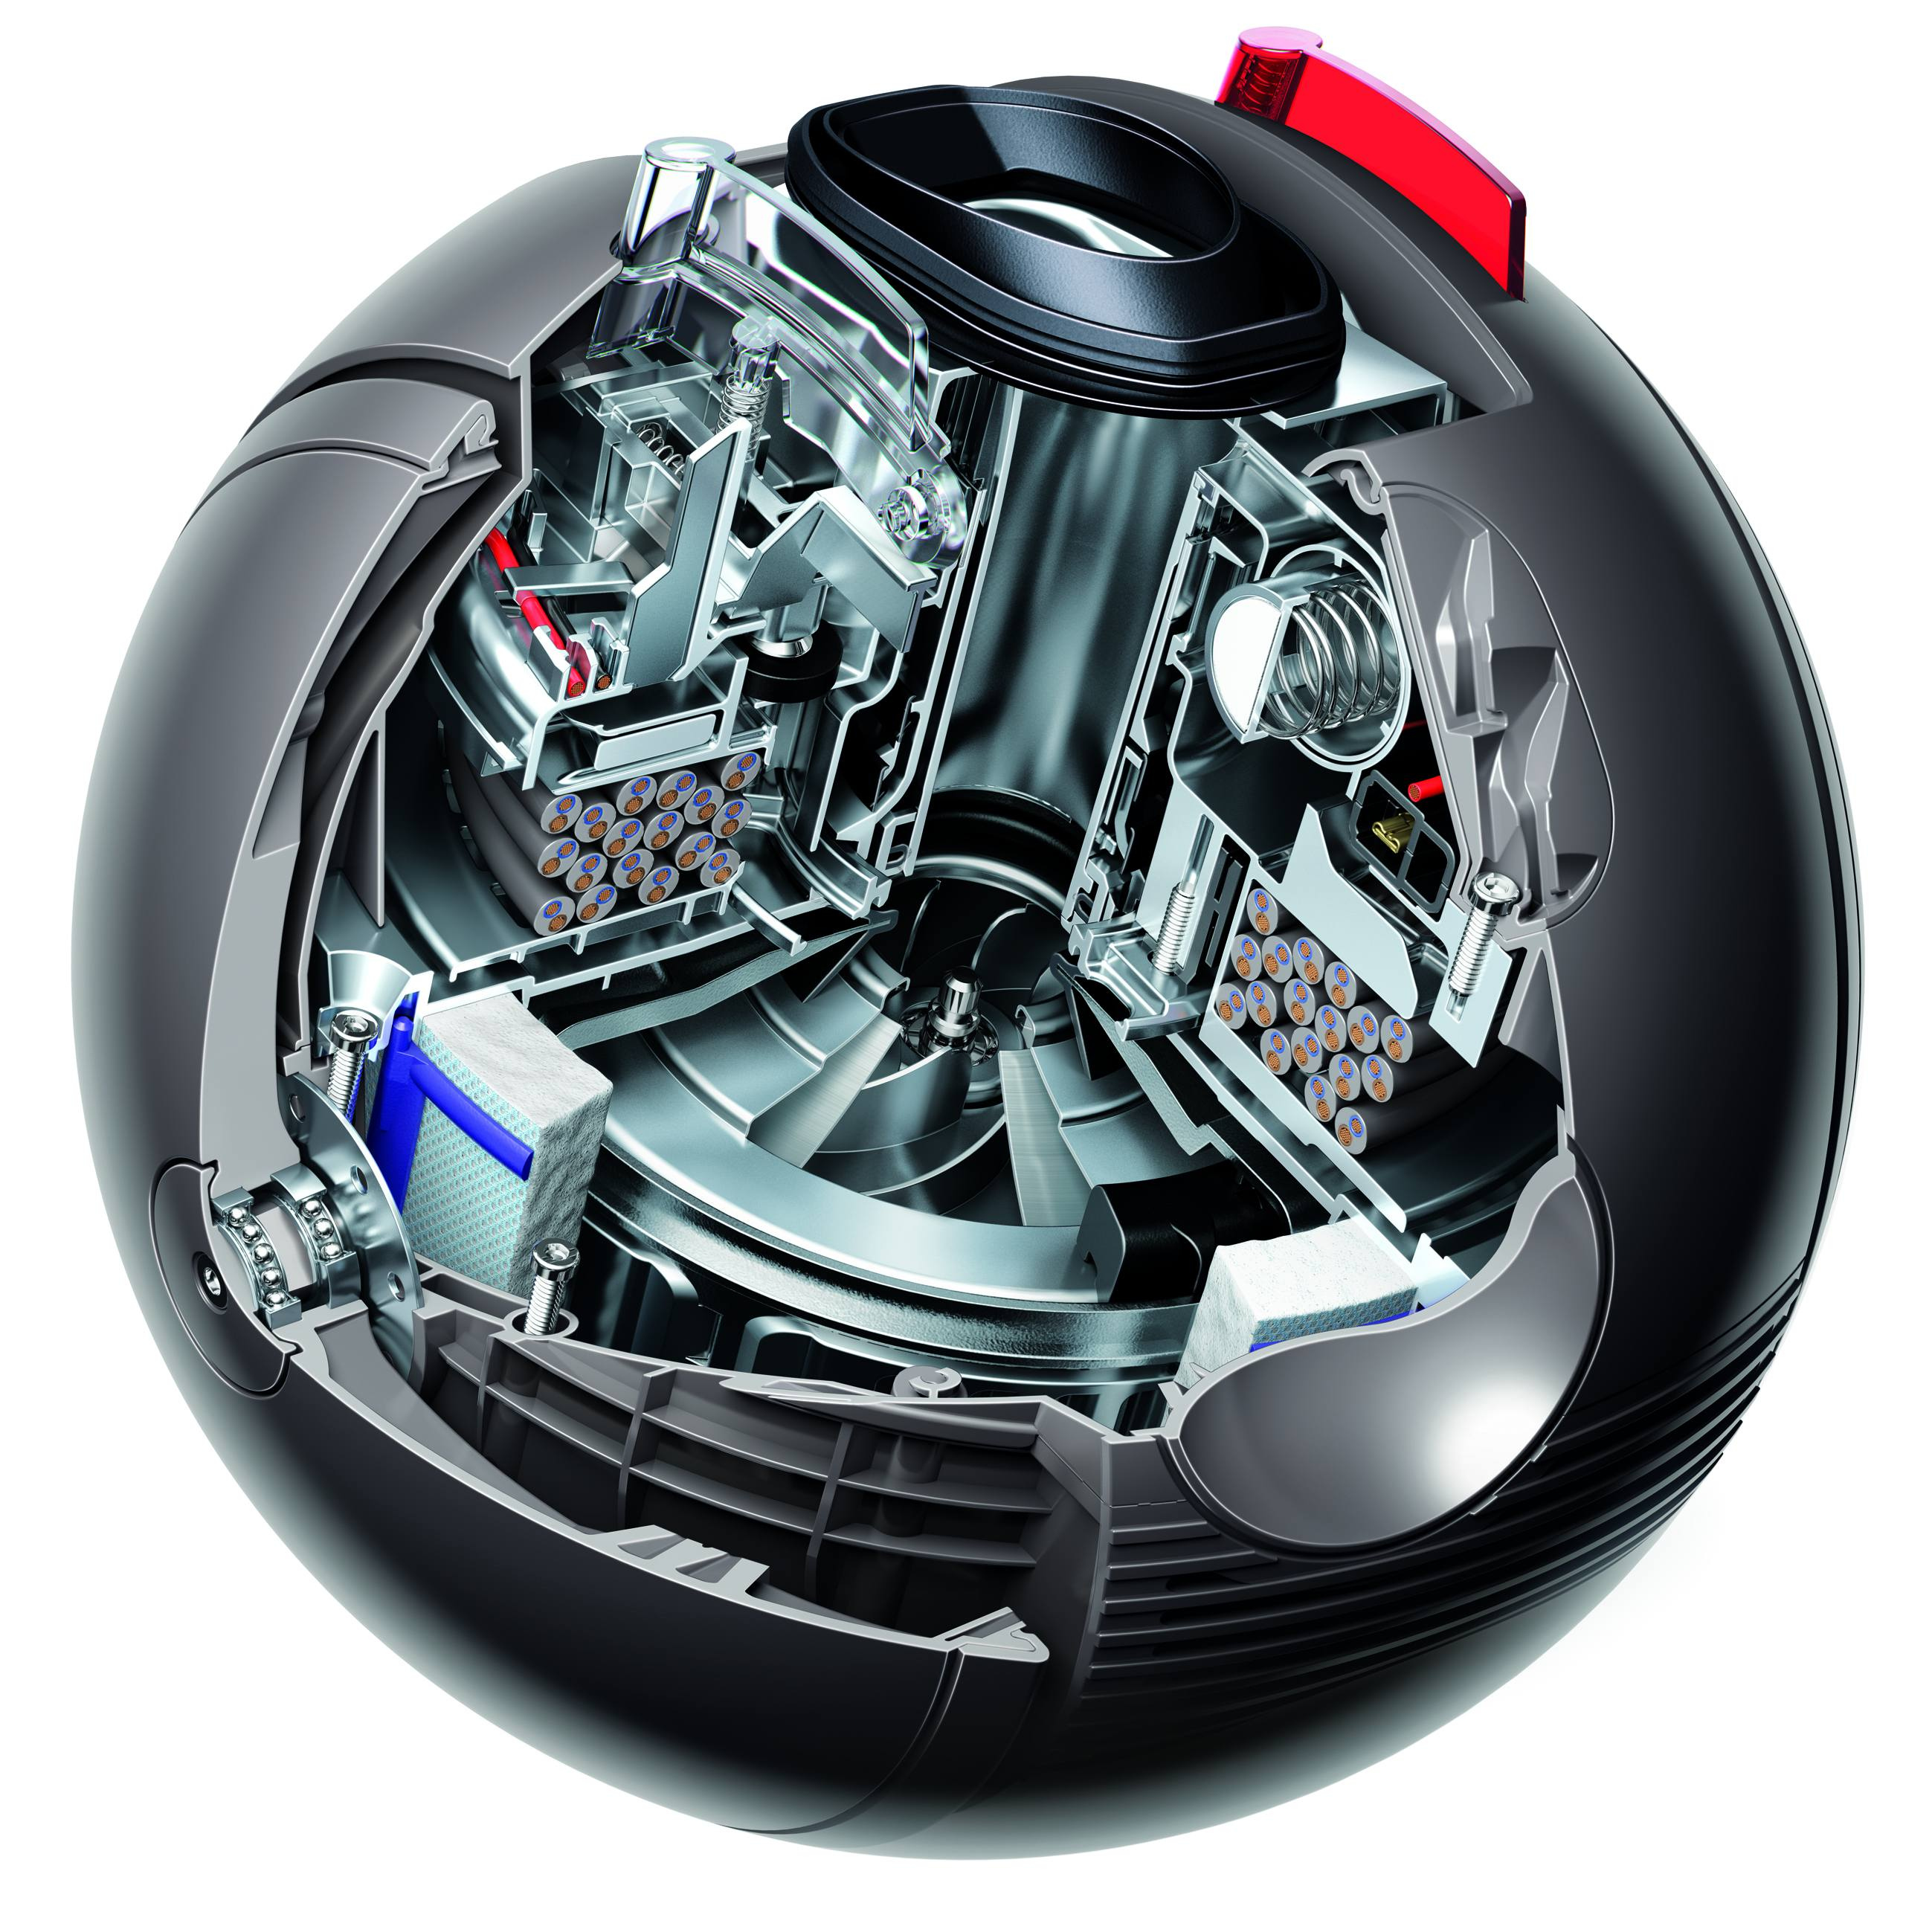 dyson dc37 ball dyson dc37 ball technologie ein. Black Bedroom Furniture Sets. Home Design Ideas